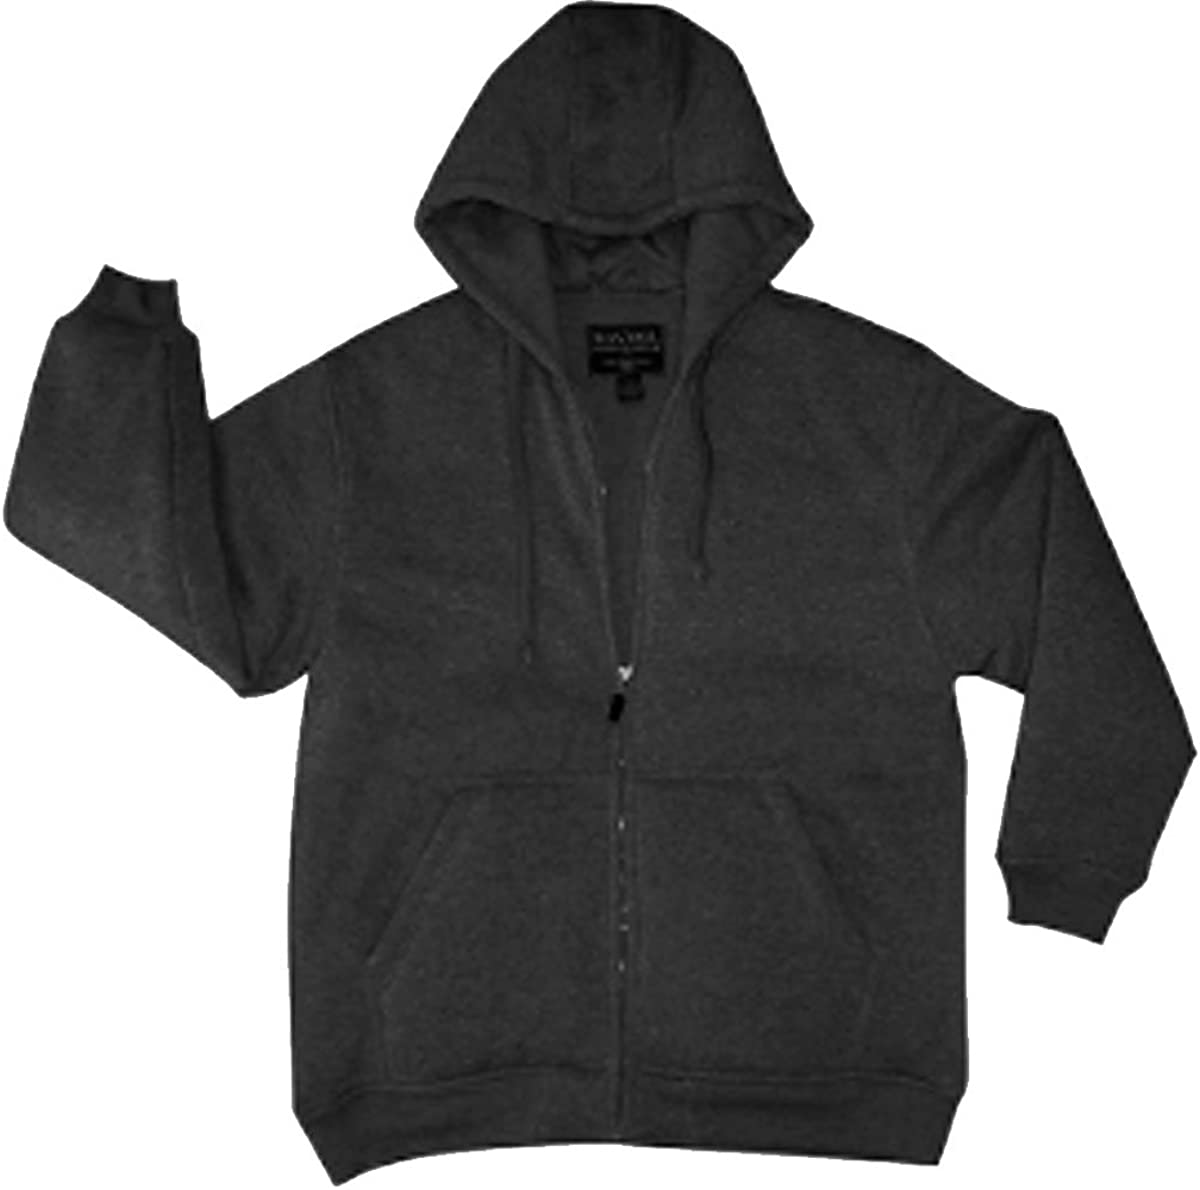 MAXXSEL Mens Matching Color Thermal Lined Full Zip Heavy Duty Hoodie